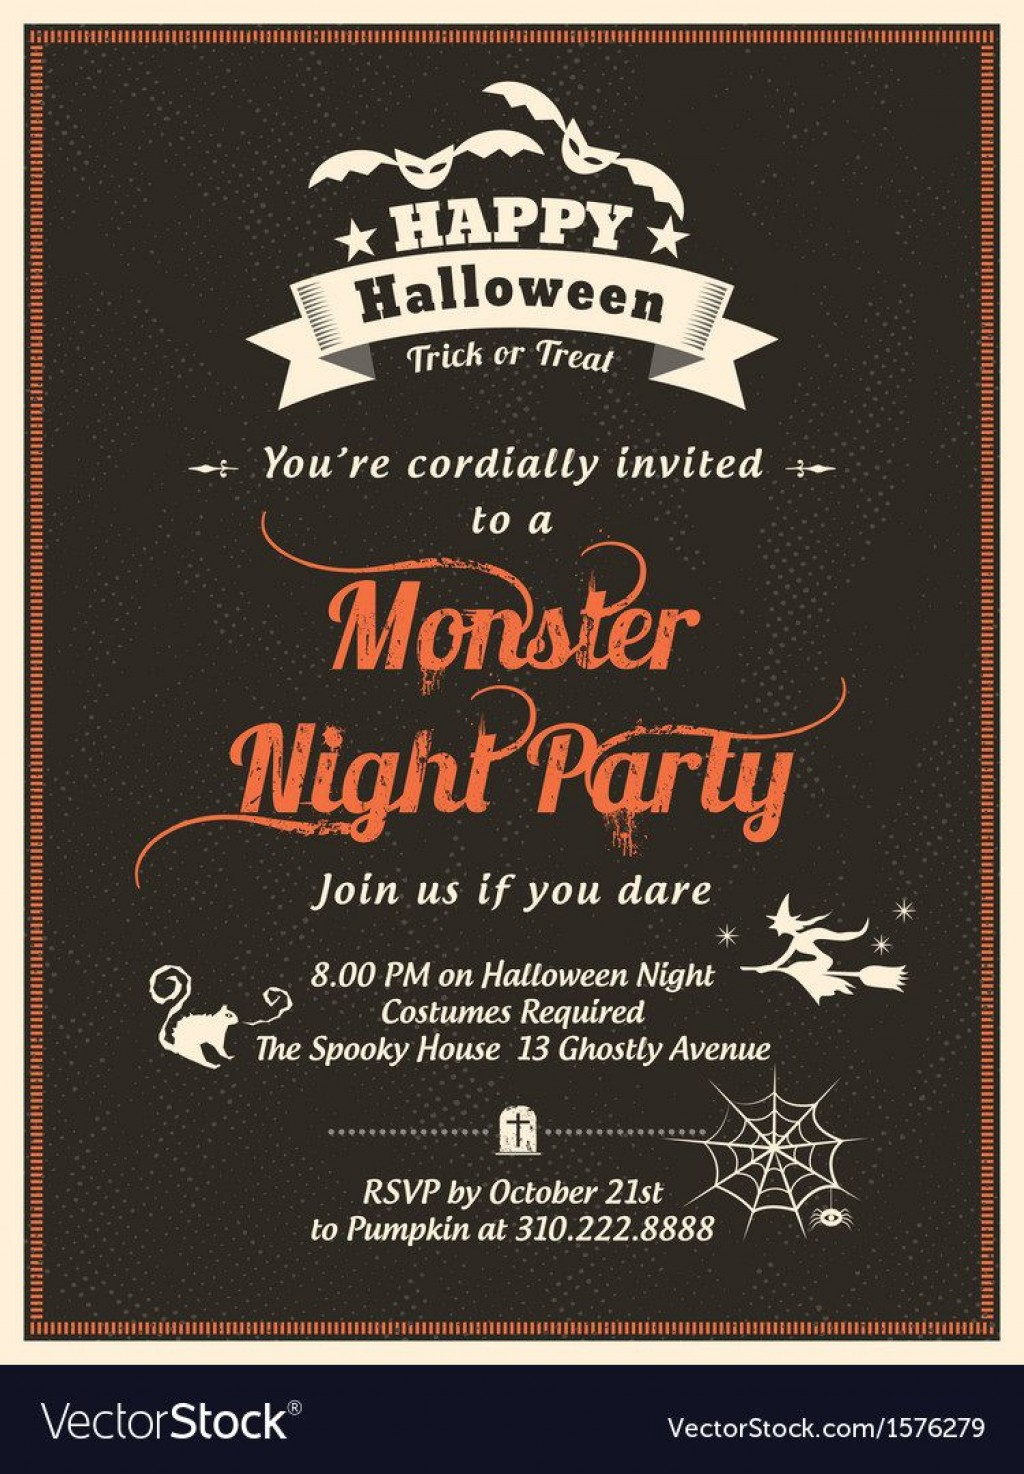 009 Beautiful Halloween Party Invite Template Highest Quality  Spooky Invitation Free Printable Birthday DownloadLarge